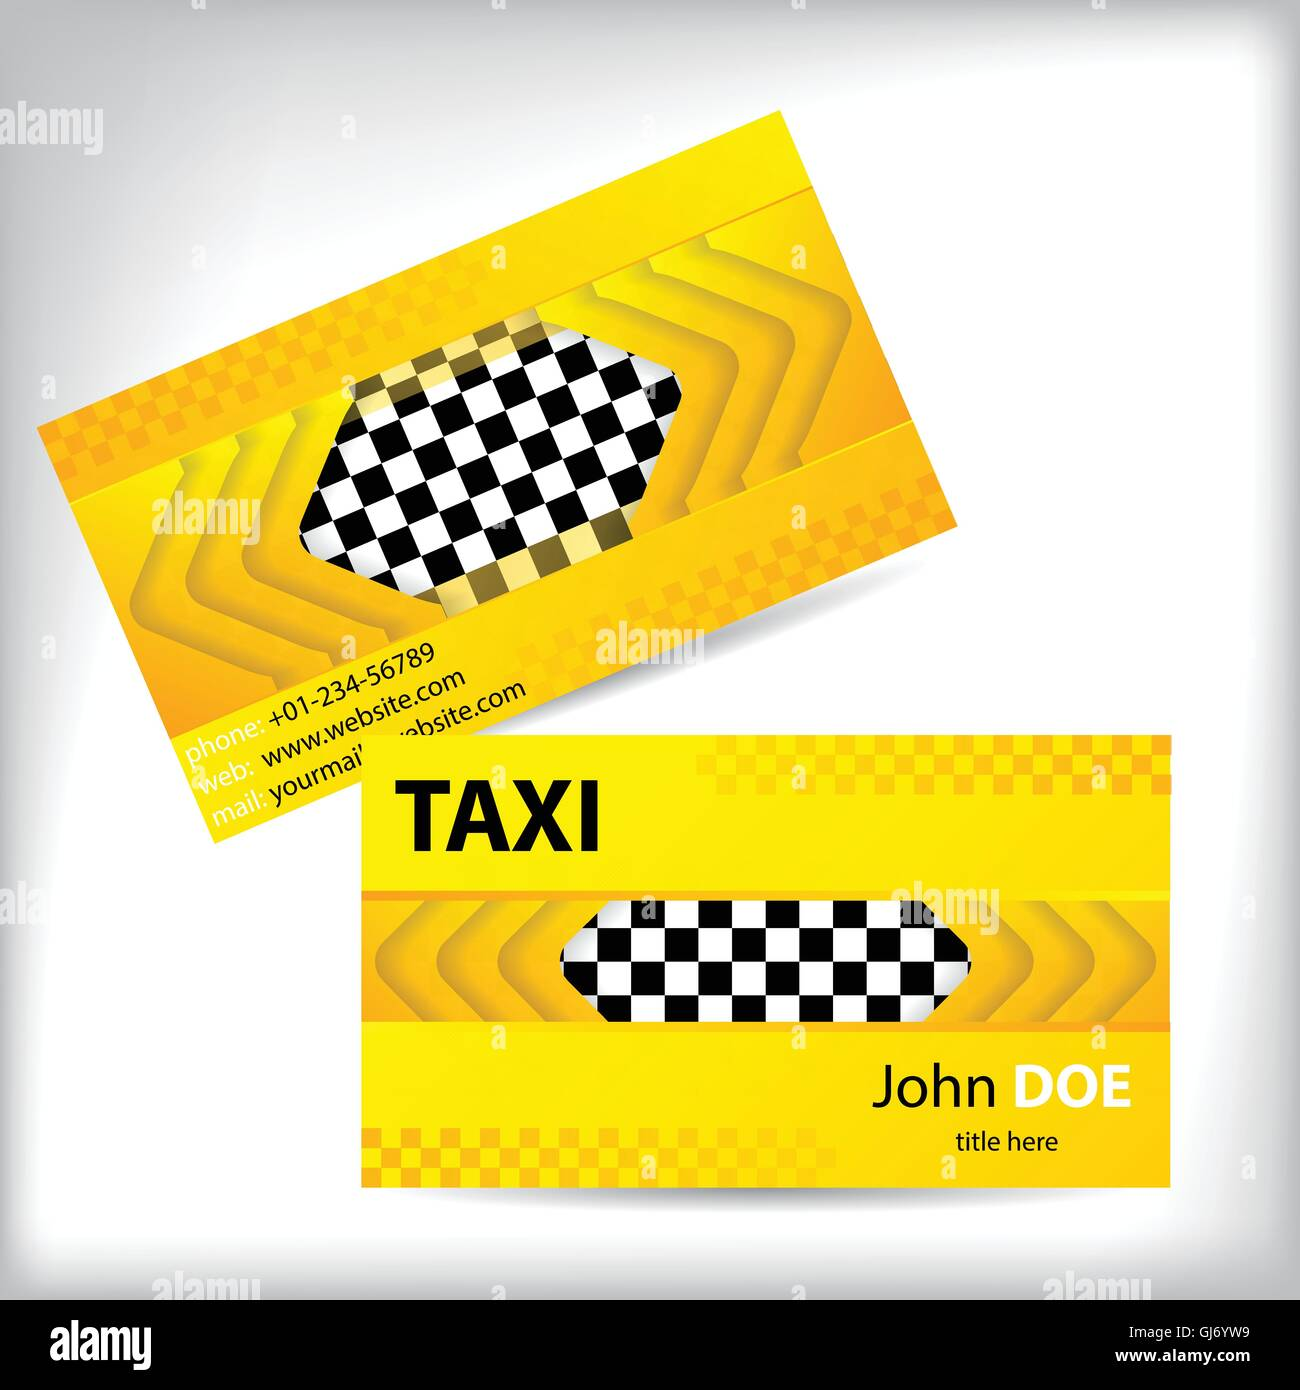 Abstract taxi business card design Stock Vector Art & Illustration ...